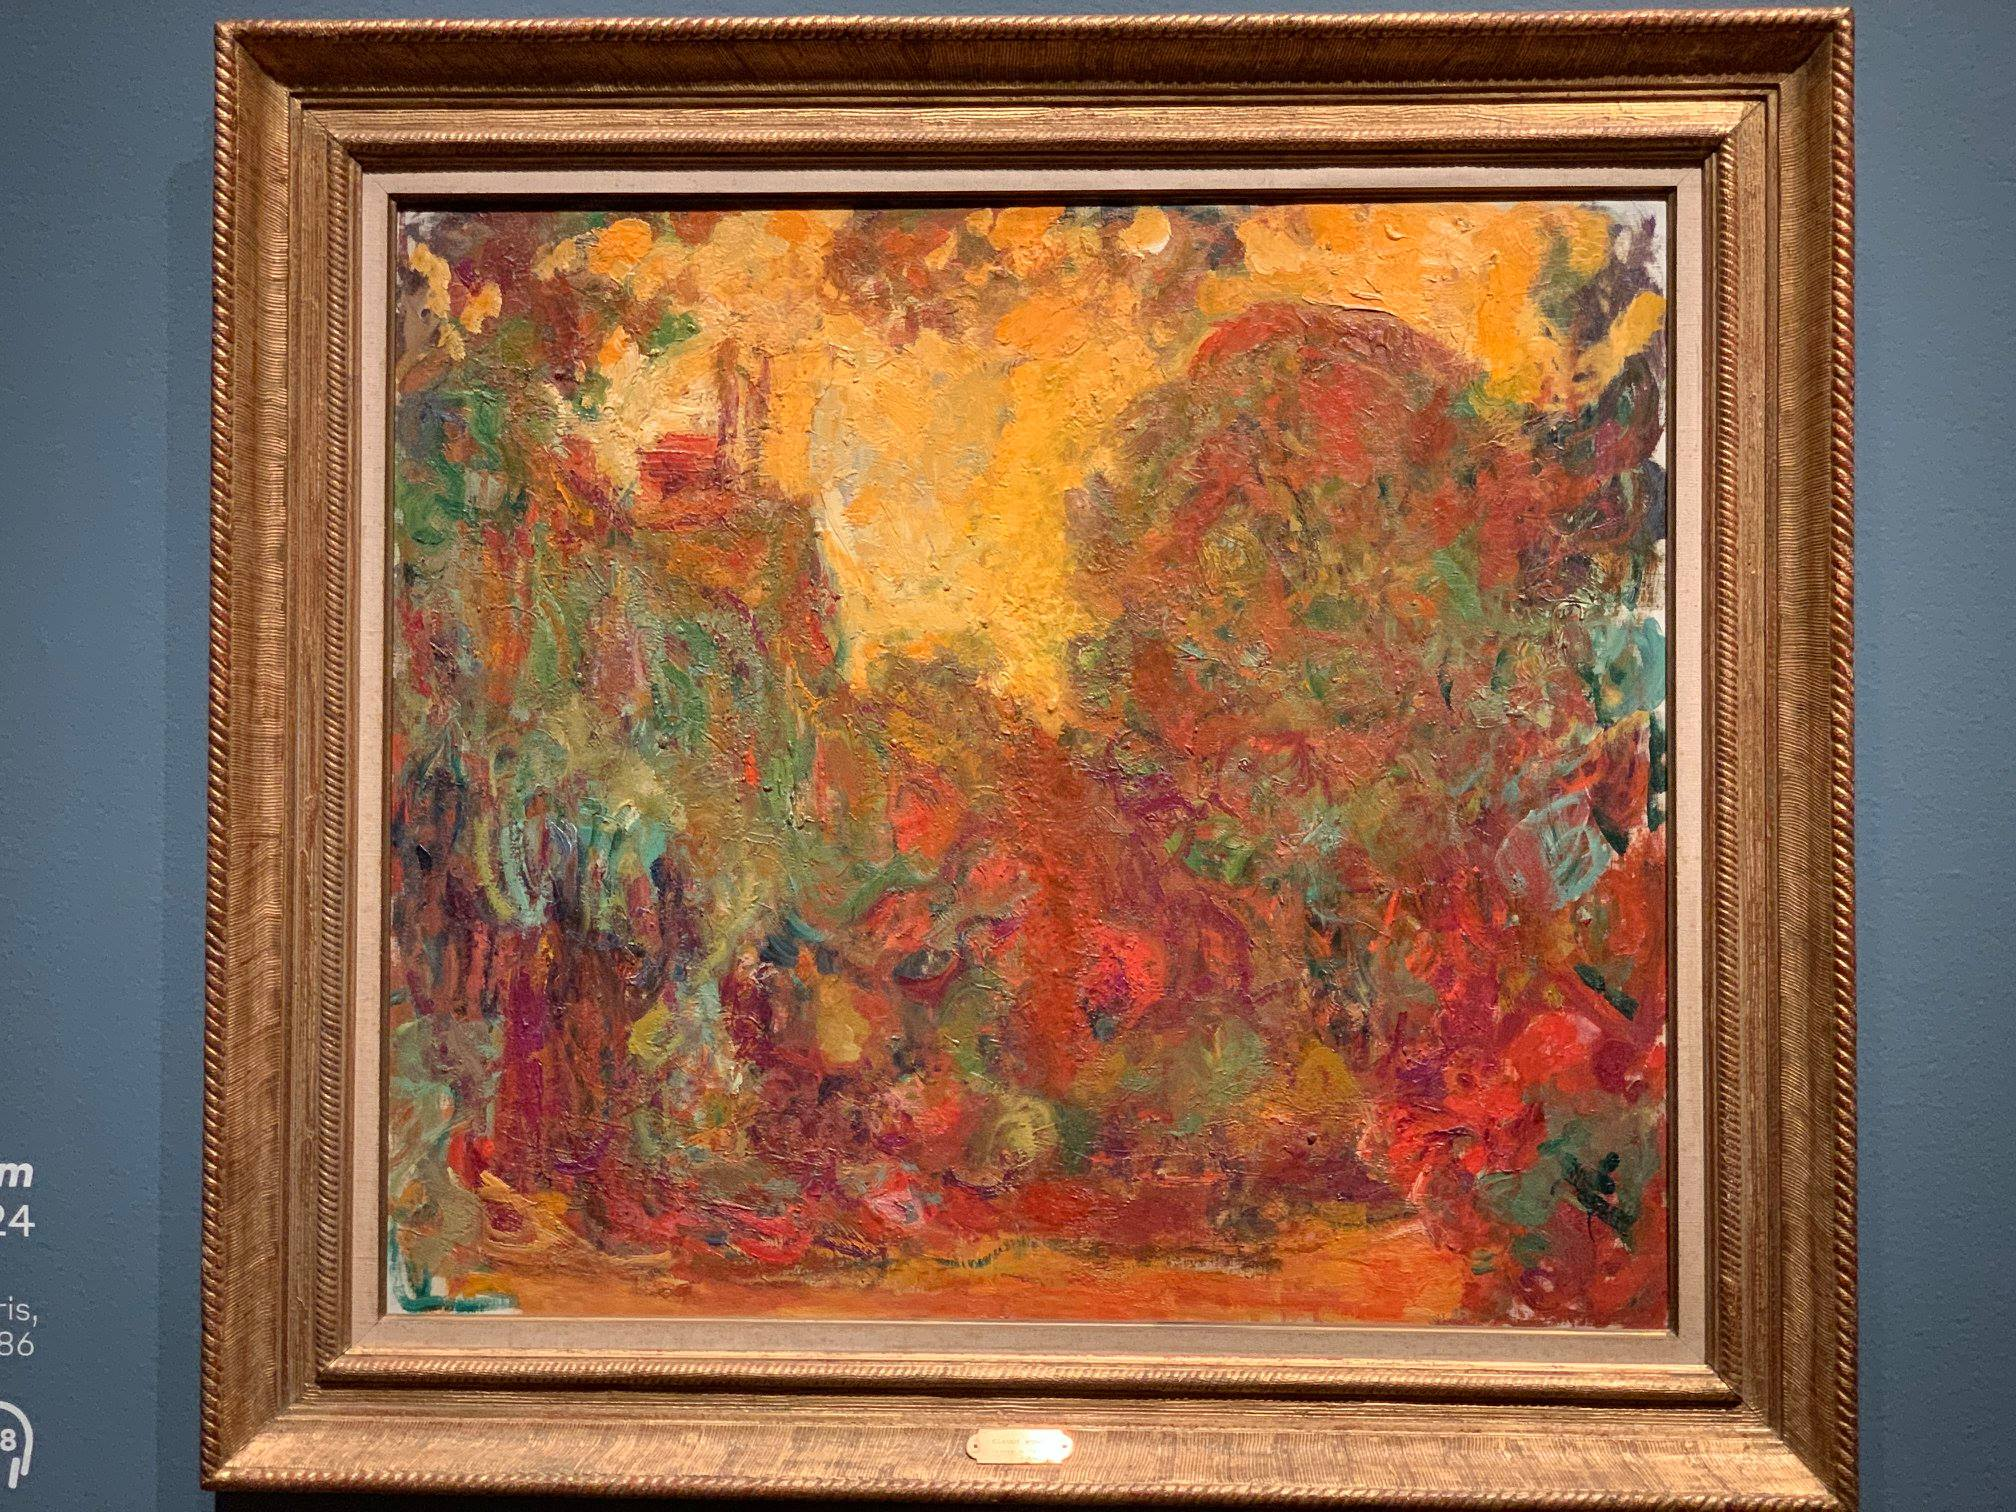 Monet, the old man, mad about painting.